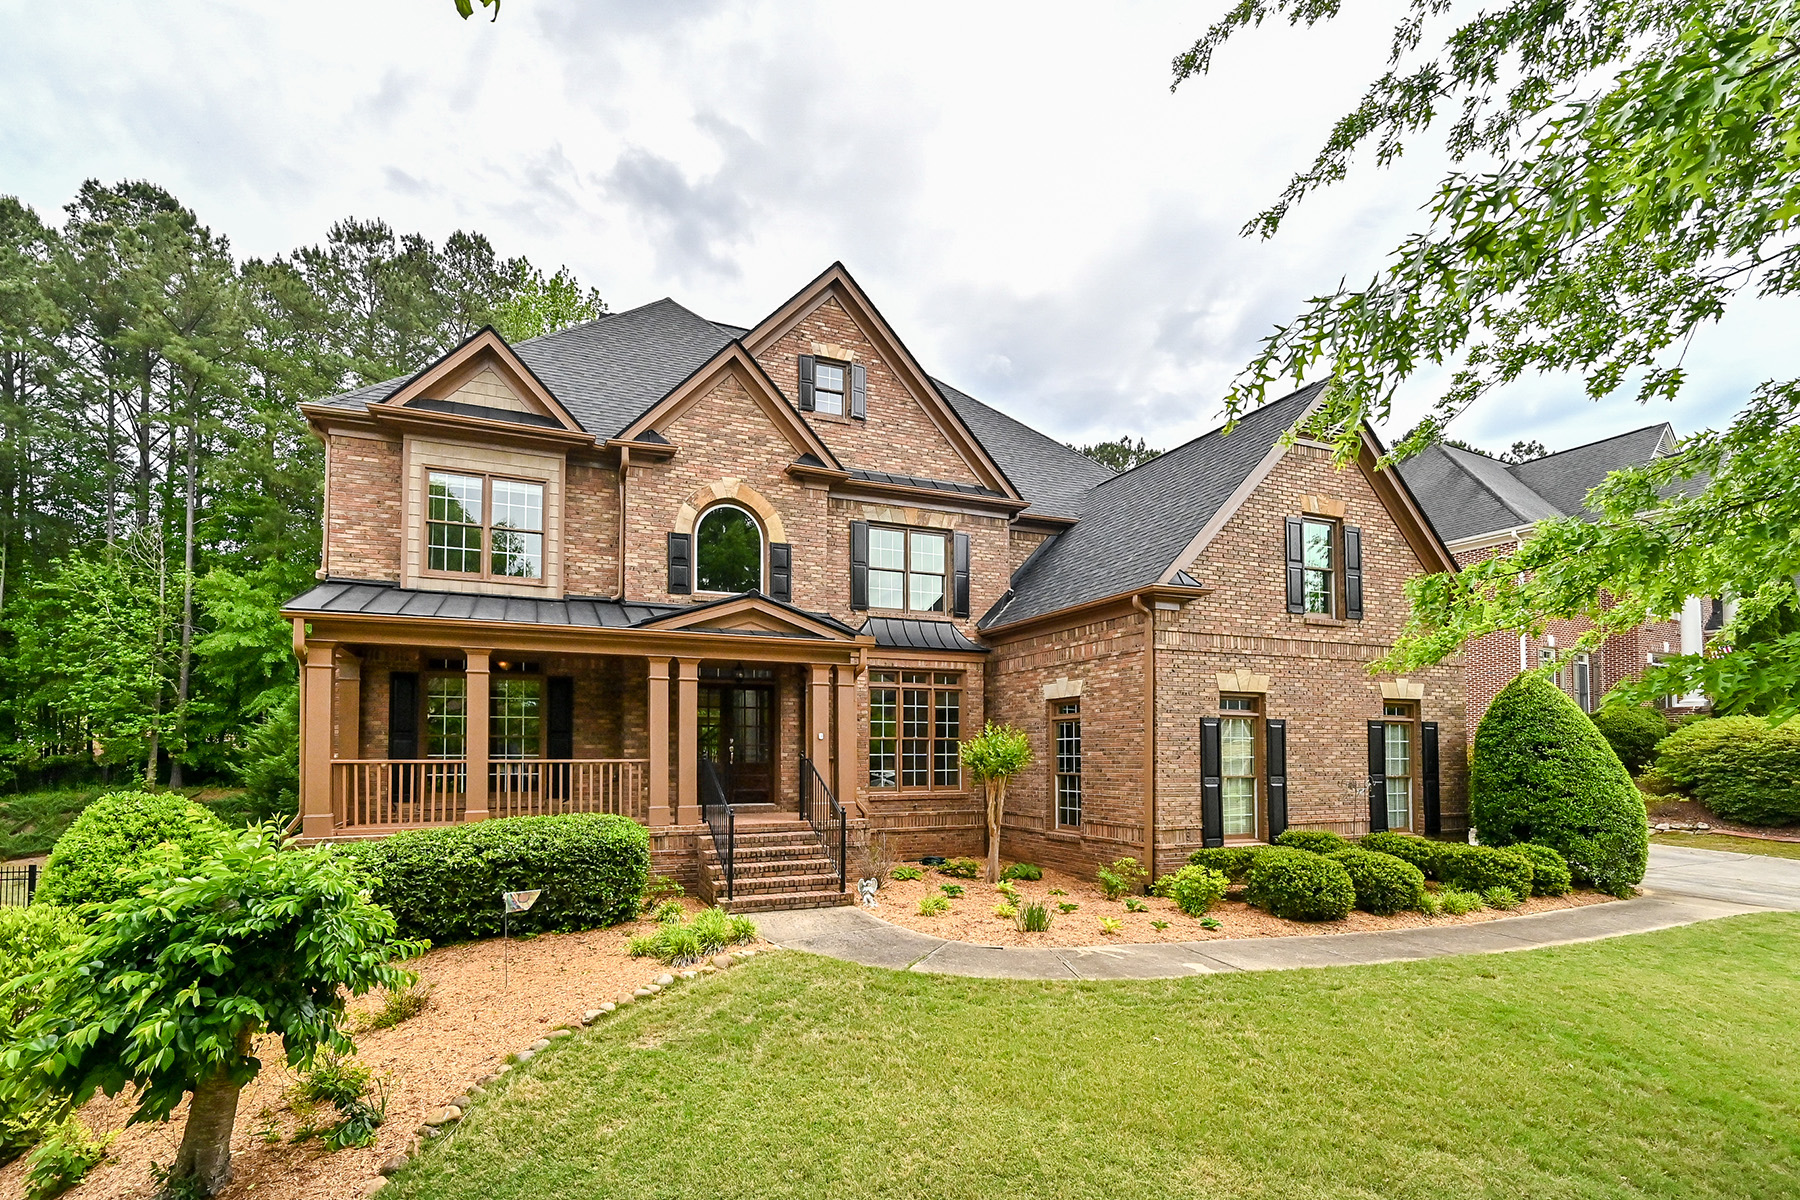 Single Family Homes for Sale at Twelfth-Hole Living in Brookstone 1616 Fernstone Drive Acworth, Georgia 30101 United States